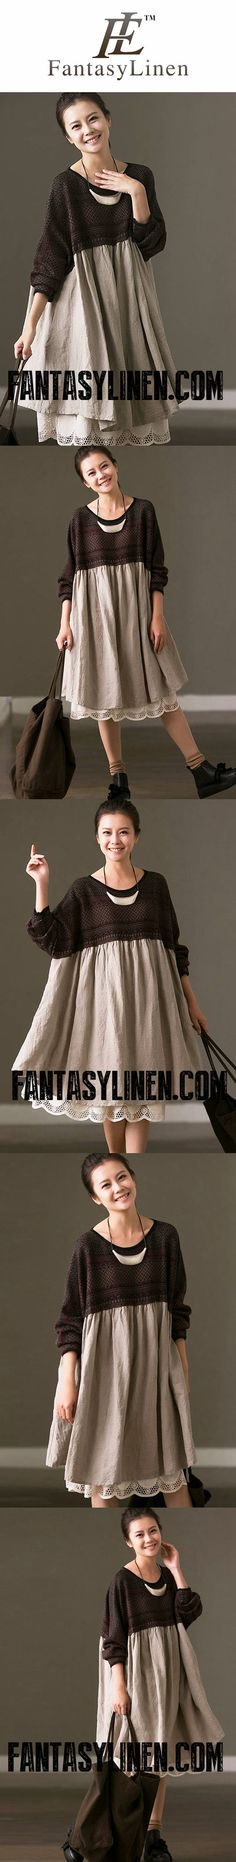 FantasyLinen Kintwear Plus Size Loose Cotton Dress, Women Linen Casual Dress Q6967B